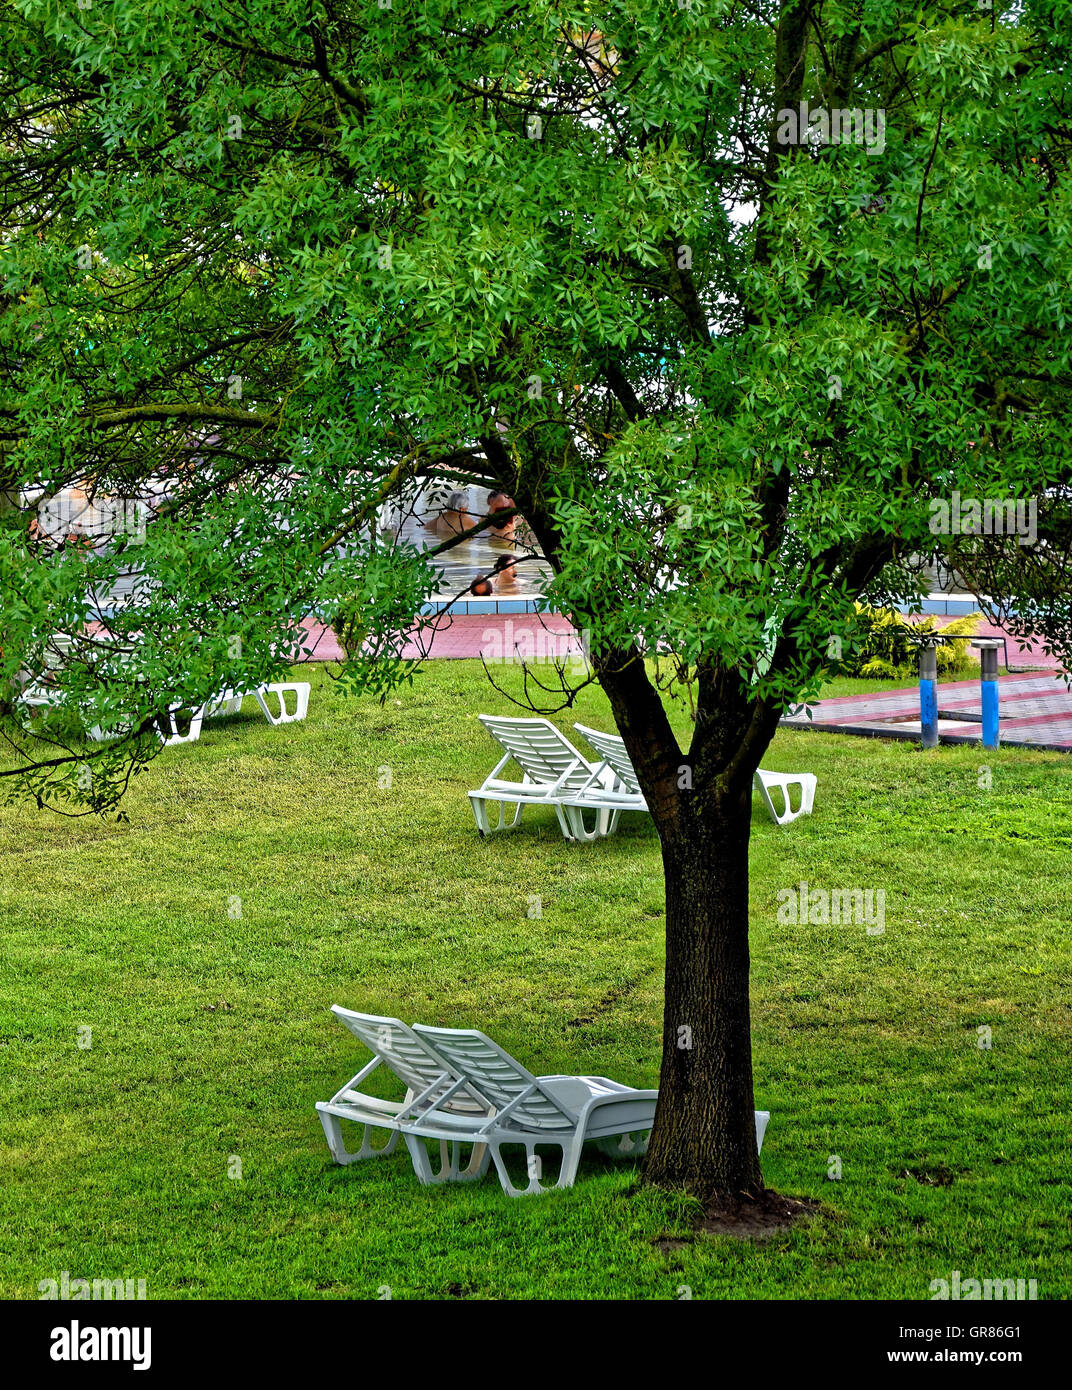 White Deck Chairs Under A Tree In The Pool   Stock Image